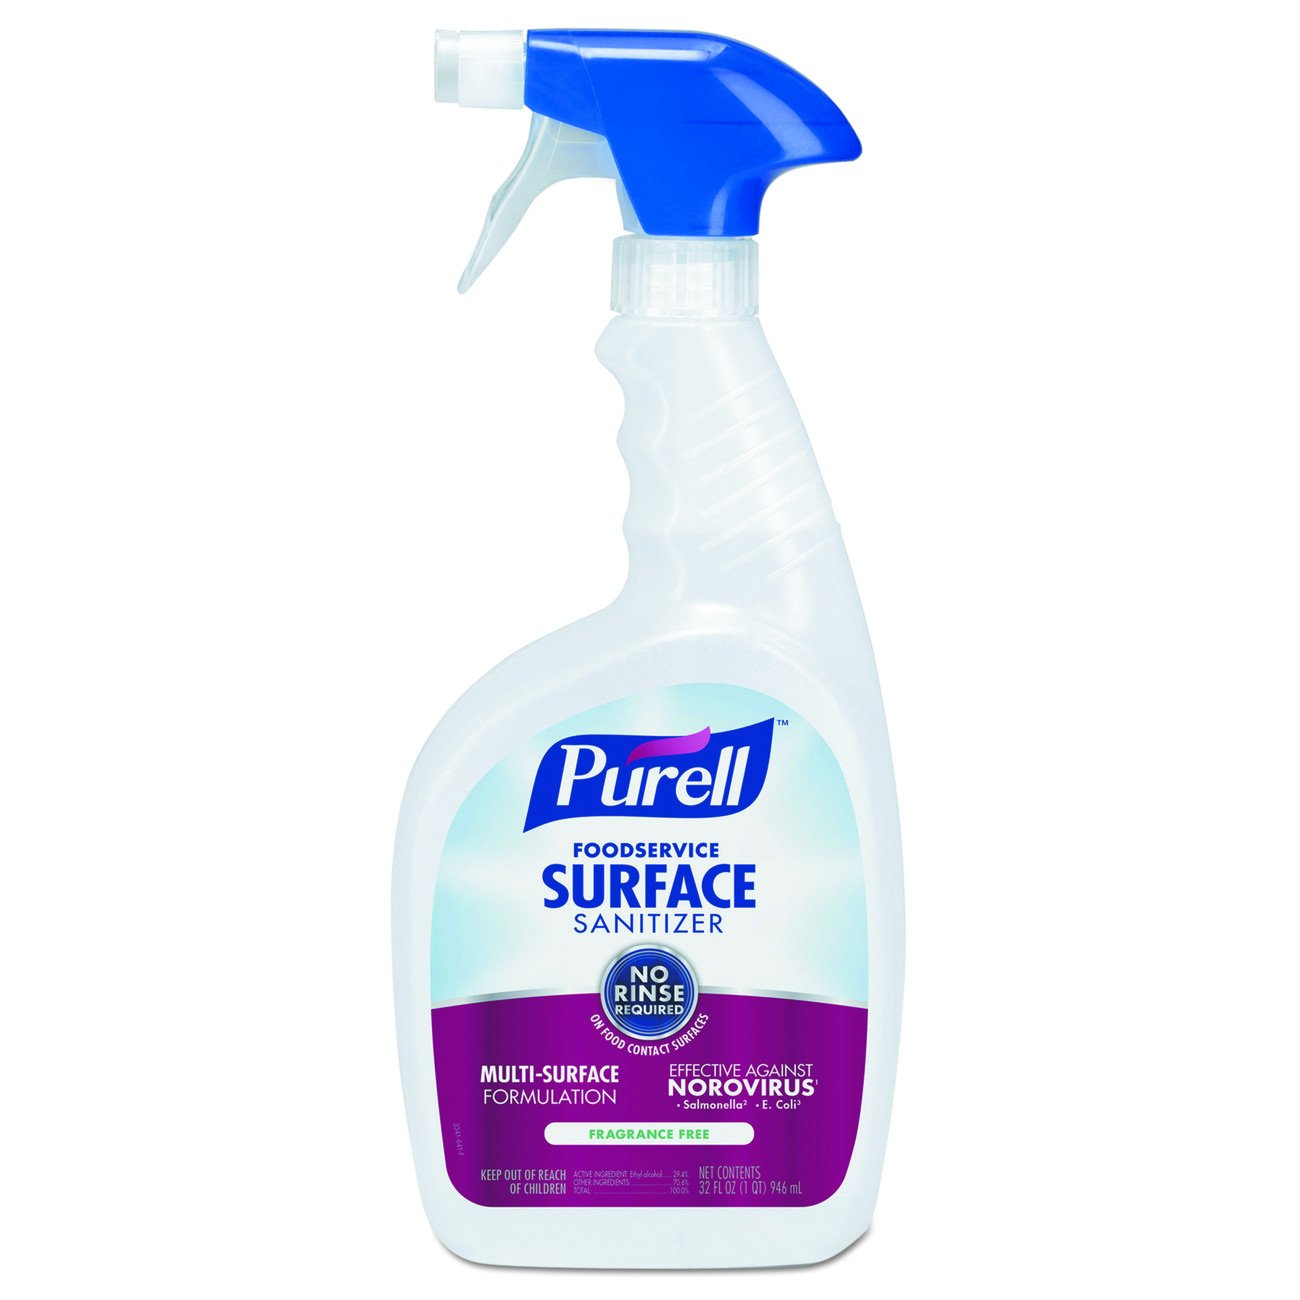 Purell 3341-03 Foodservice Surface Sanitizer 32 oz - Kills Norovirus in 30 Seconds, Fragrance Free, RTU (Pack of 3)